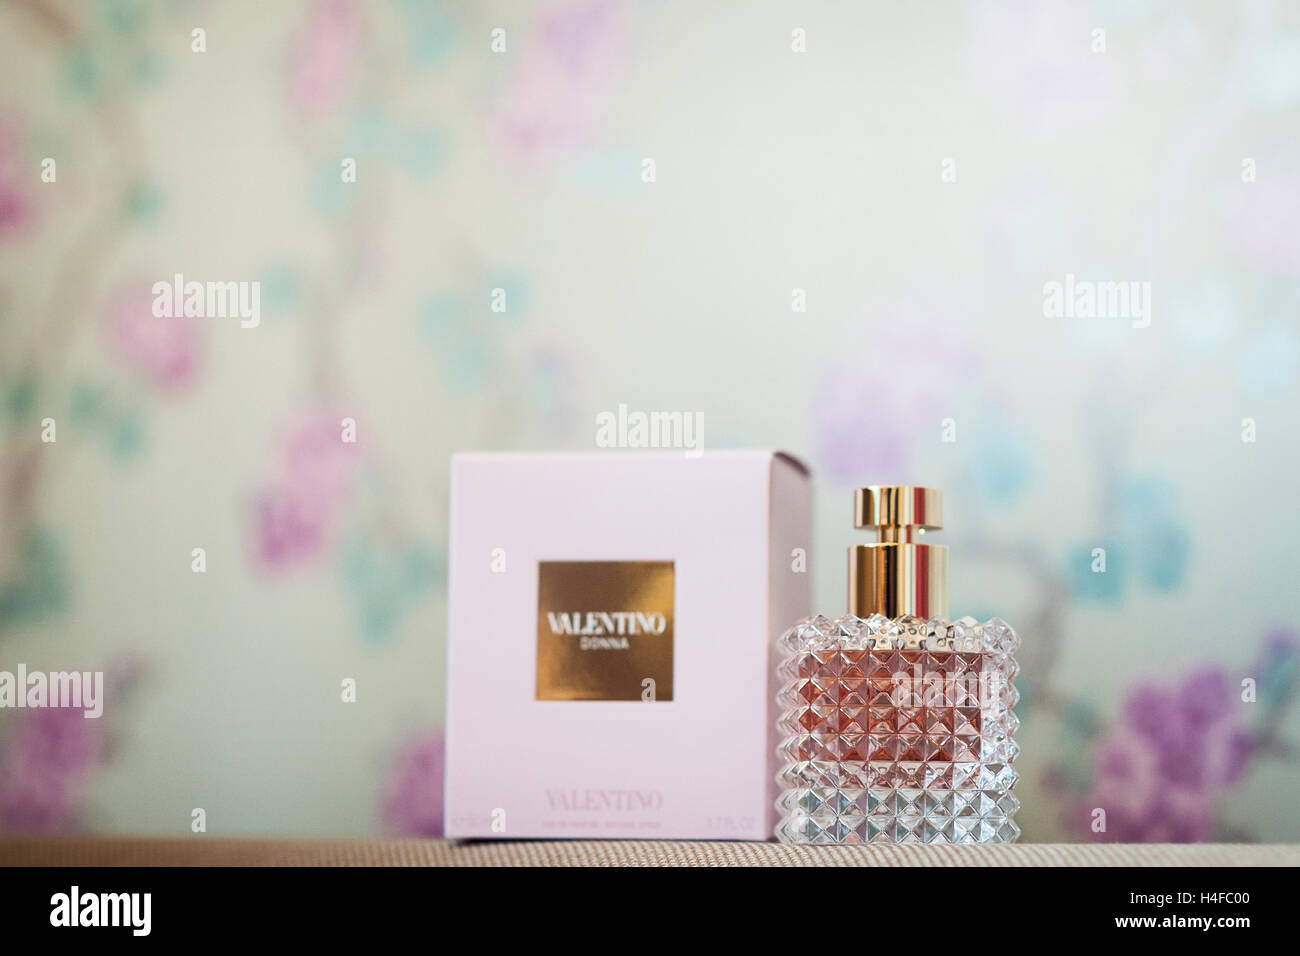 valentino perfume bottle with box - Stock Image